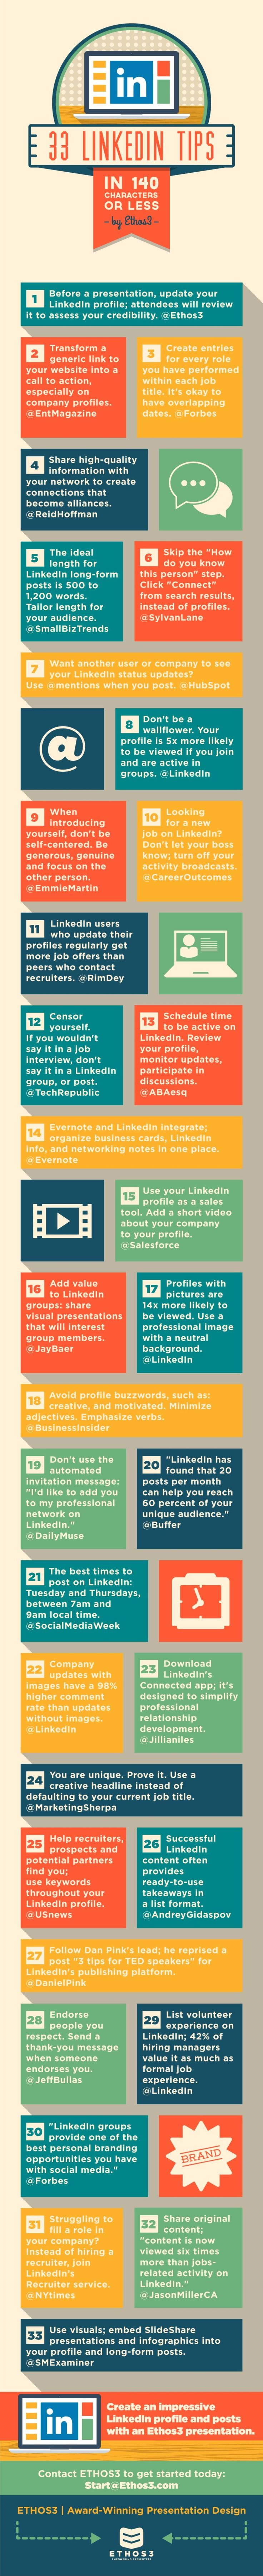 This infographic offers 33 tips to ensure that your LinkedIn profile is at all-star status.